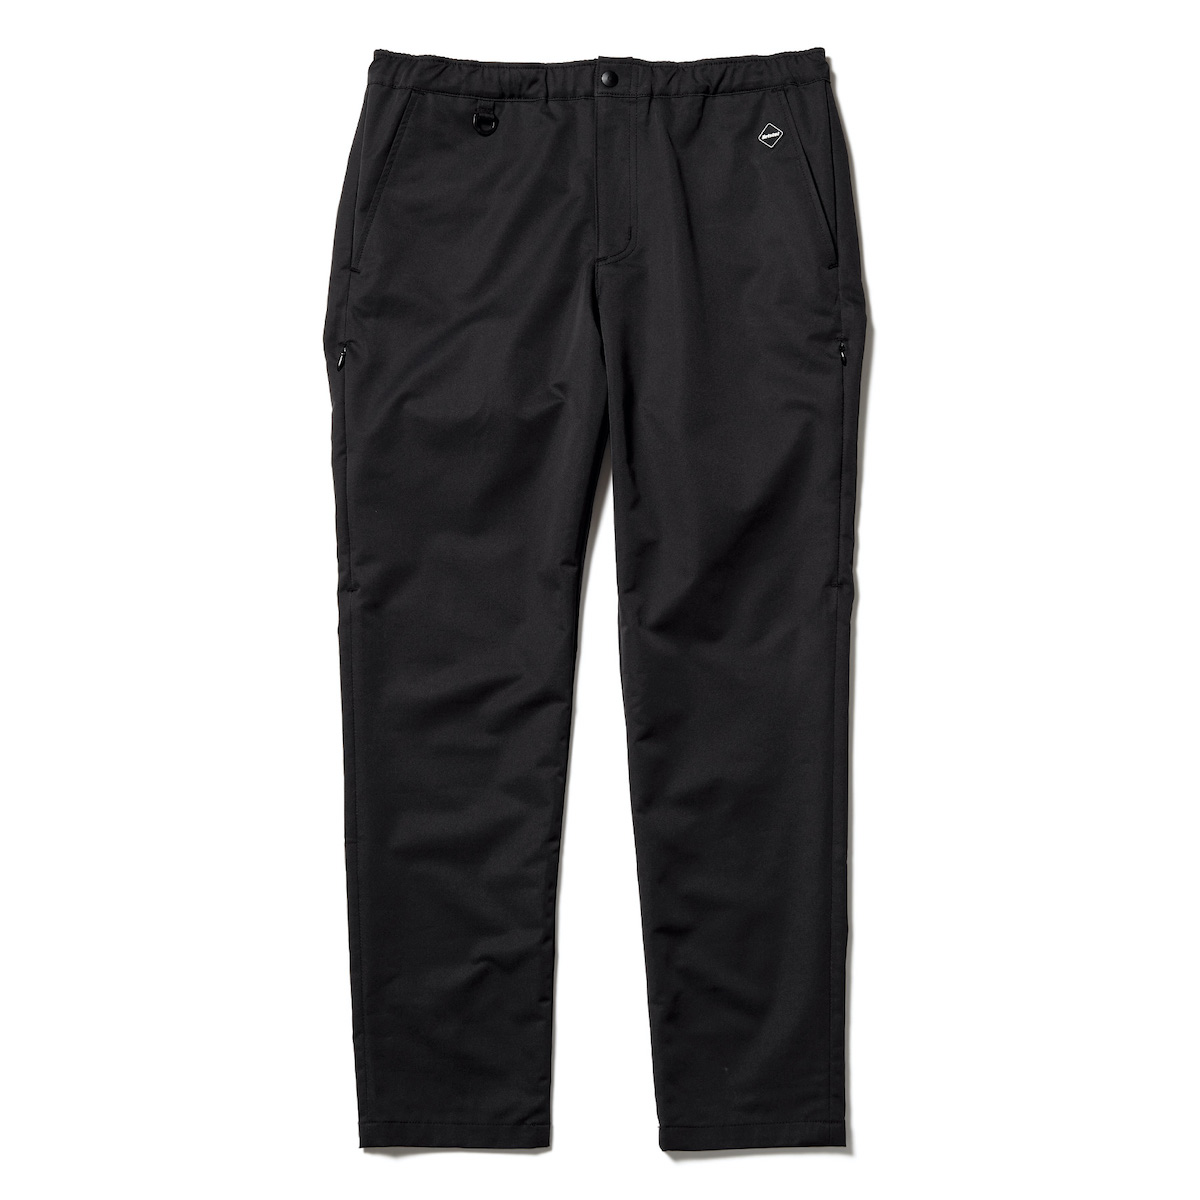 F.C.Real Bristol / VENTILATION STRETCH CHINO PANTS (Black)